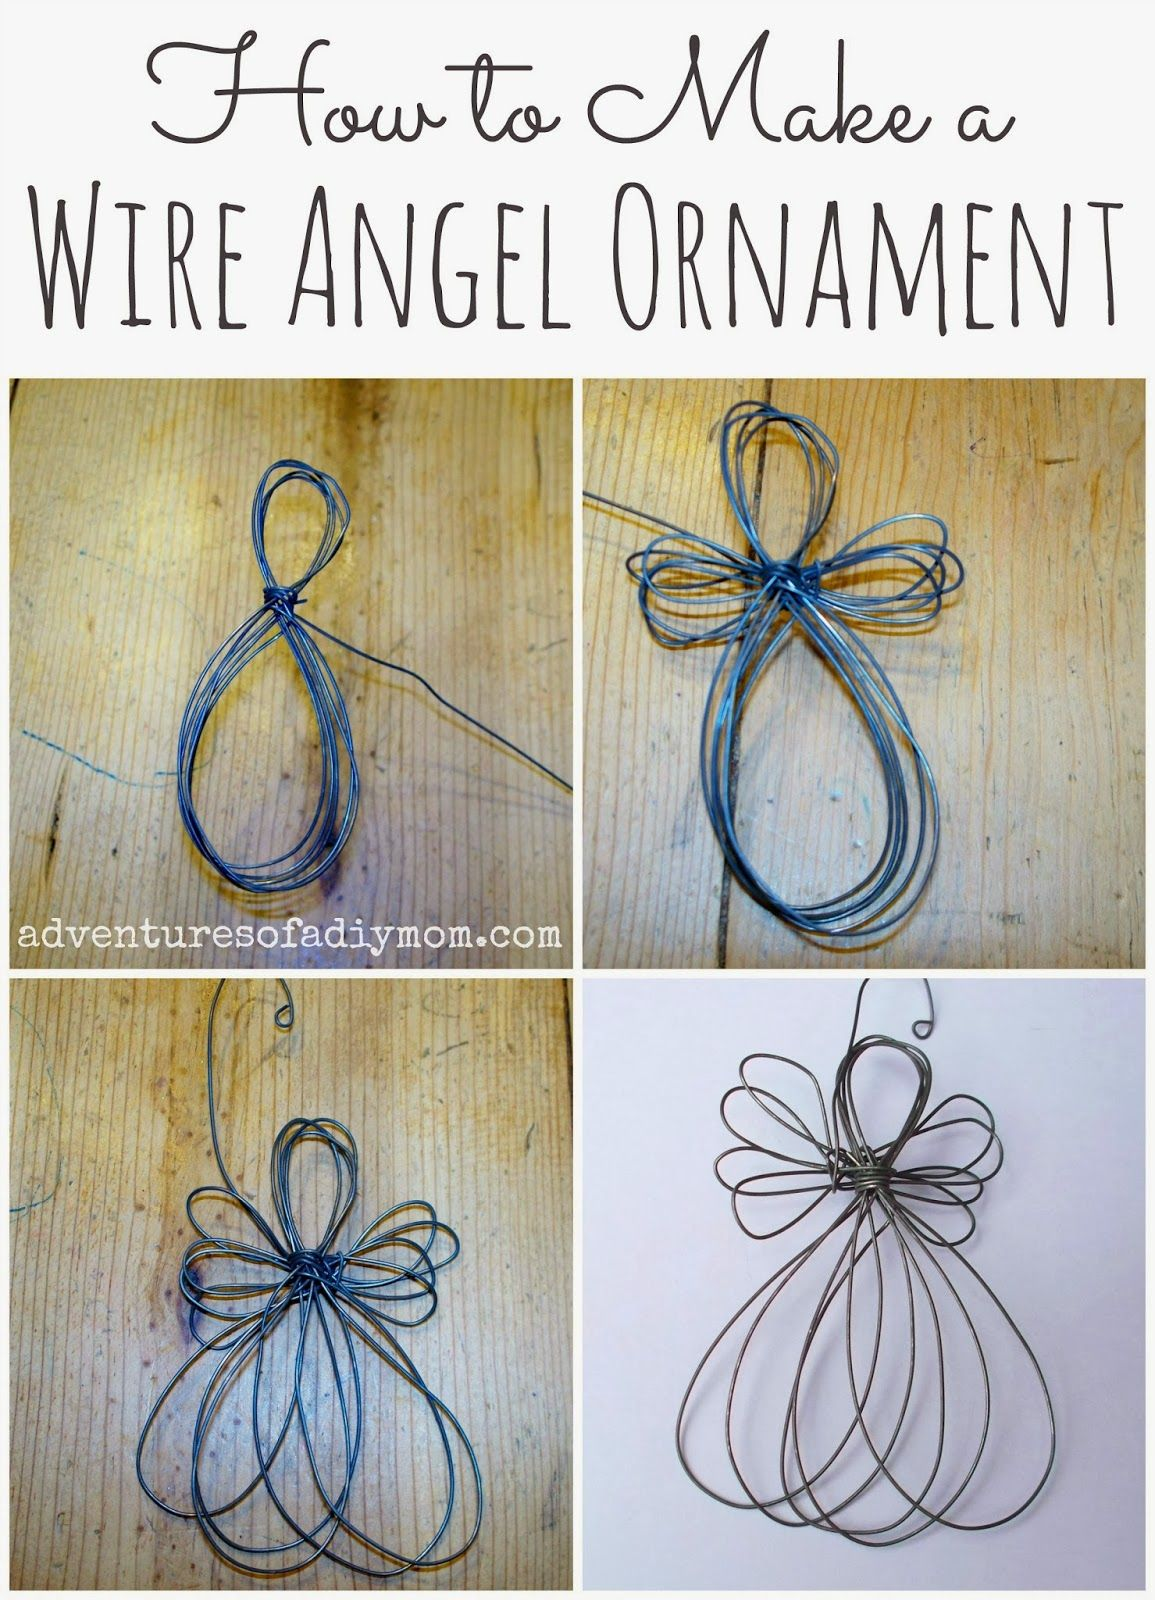 How to Make a Wire Angel Ornament - Nativity Ornament Series | Draht ...